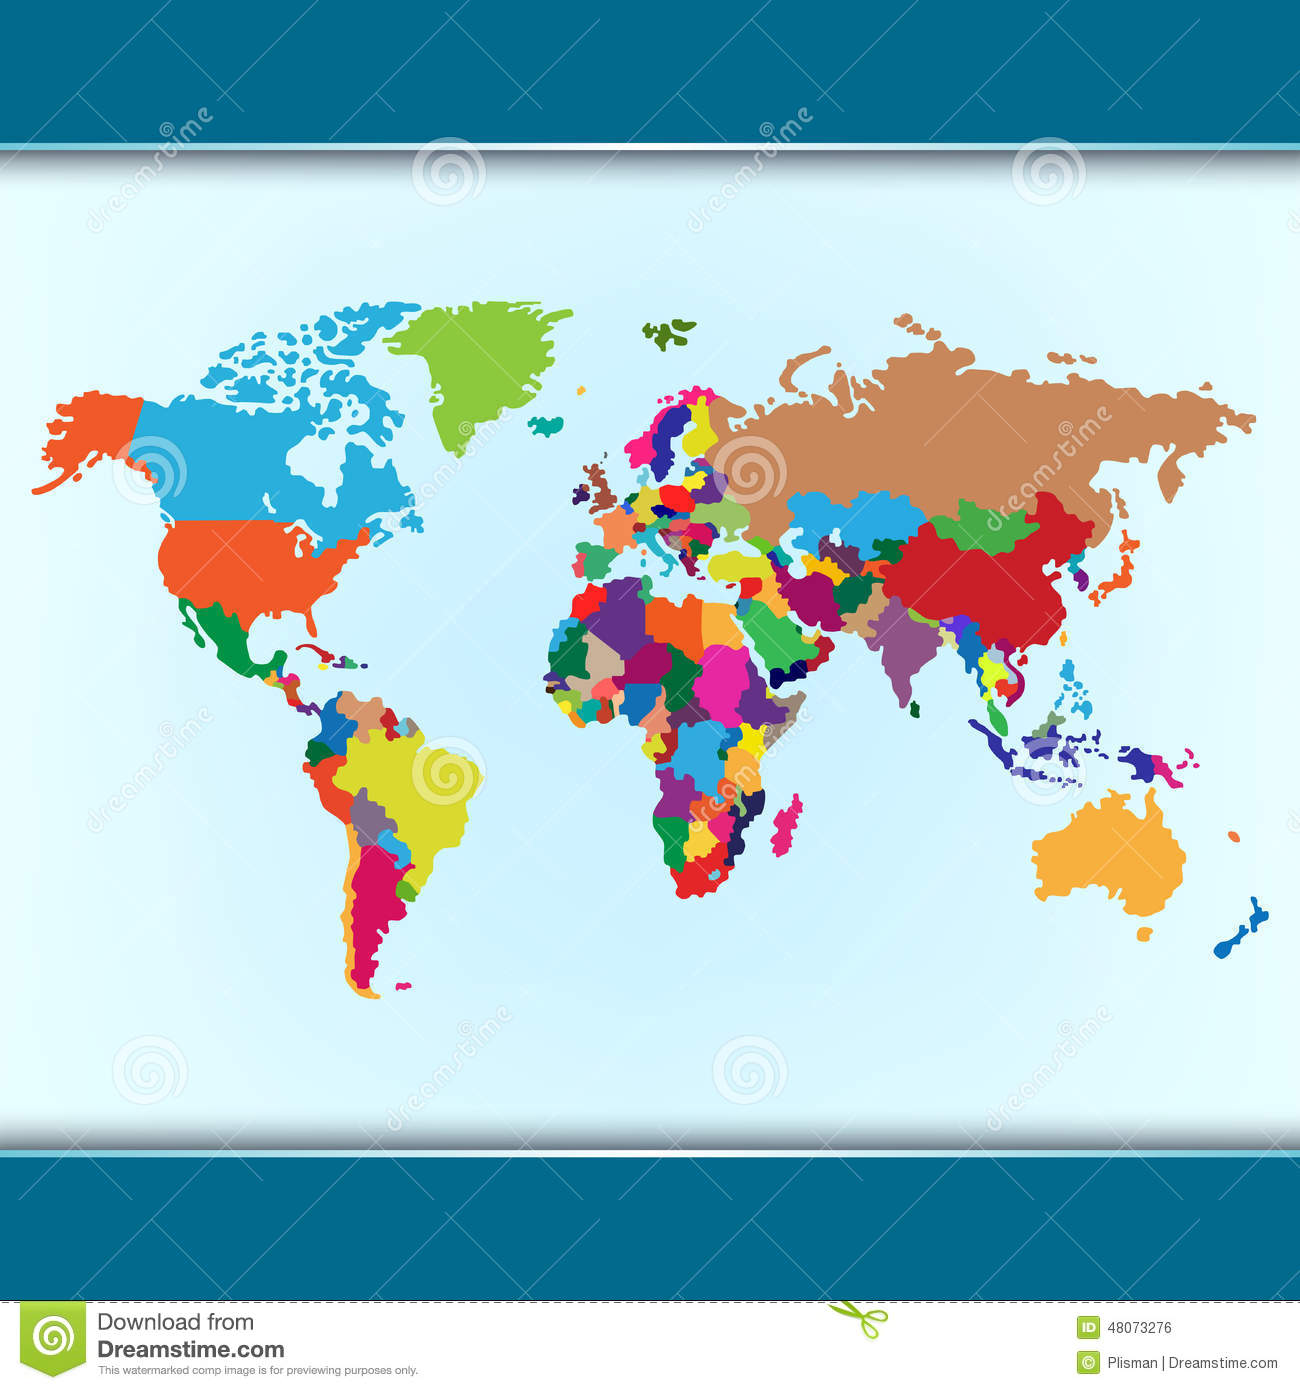 Simple Colorful World Map Stock Vector Illustration Of